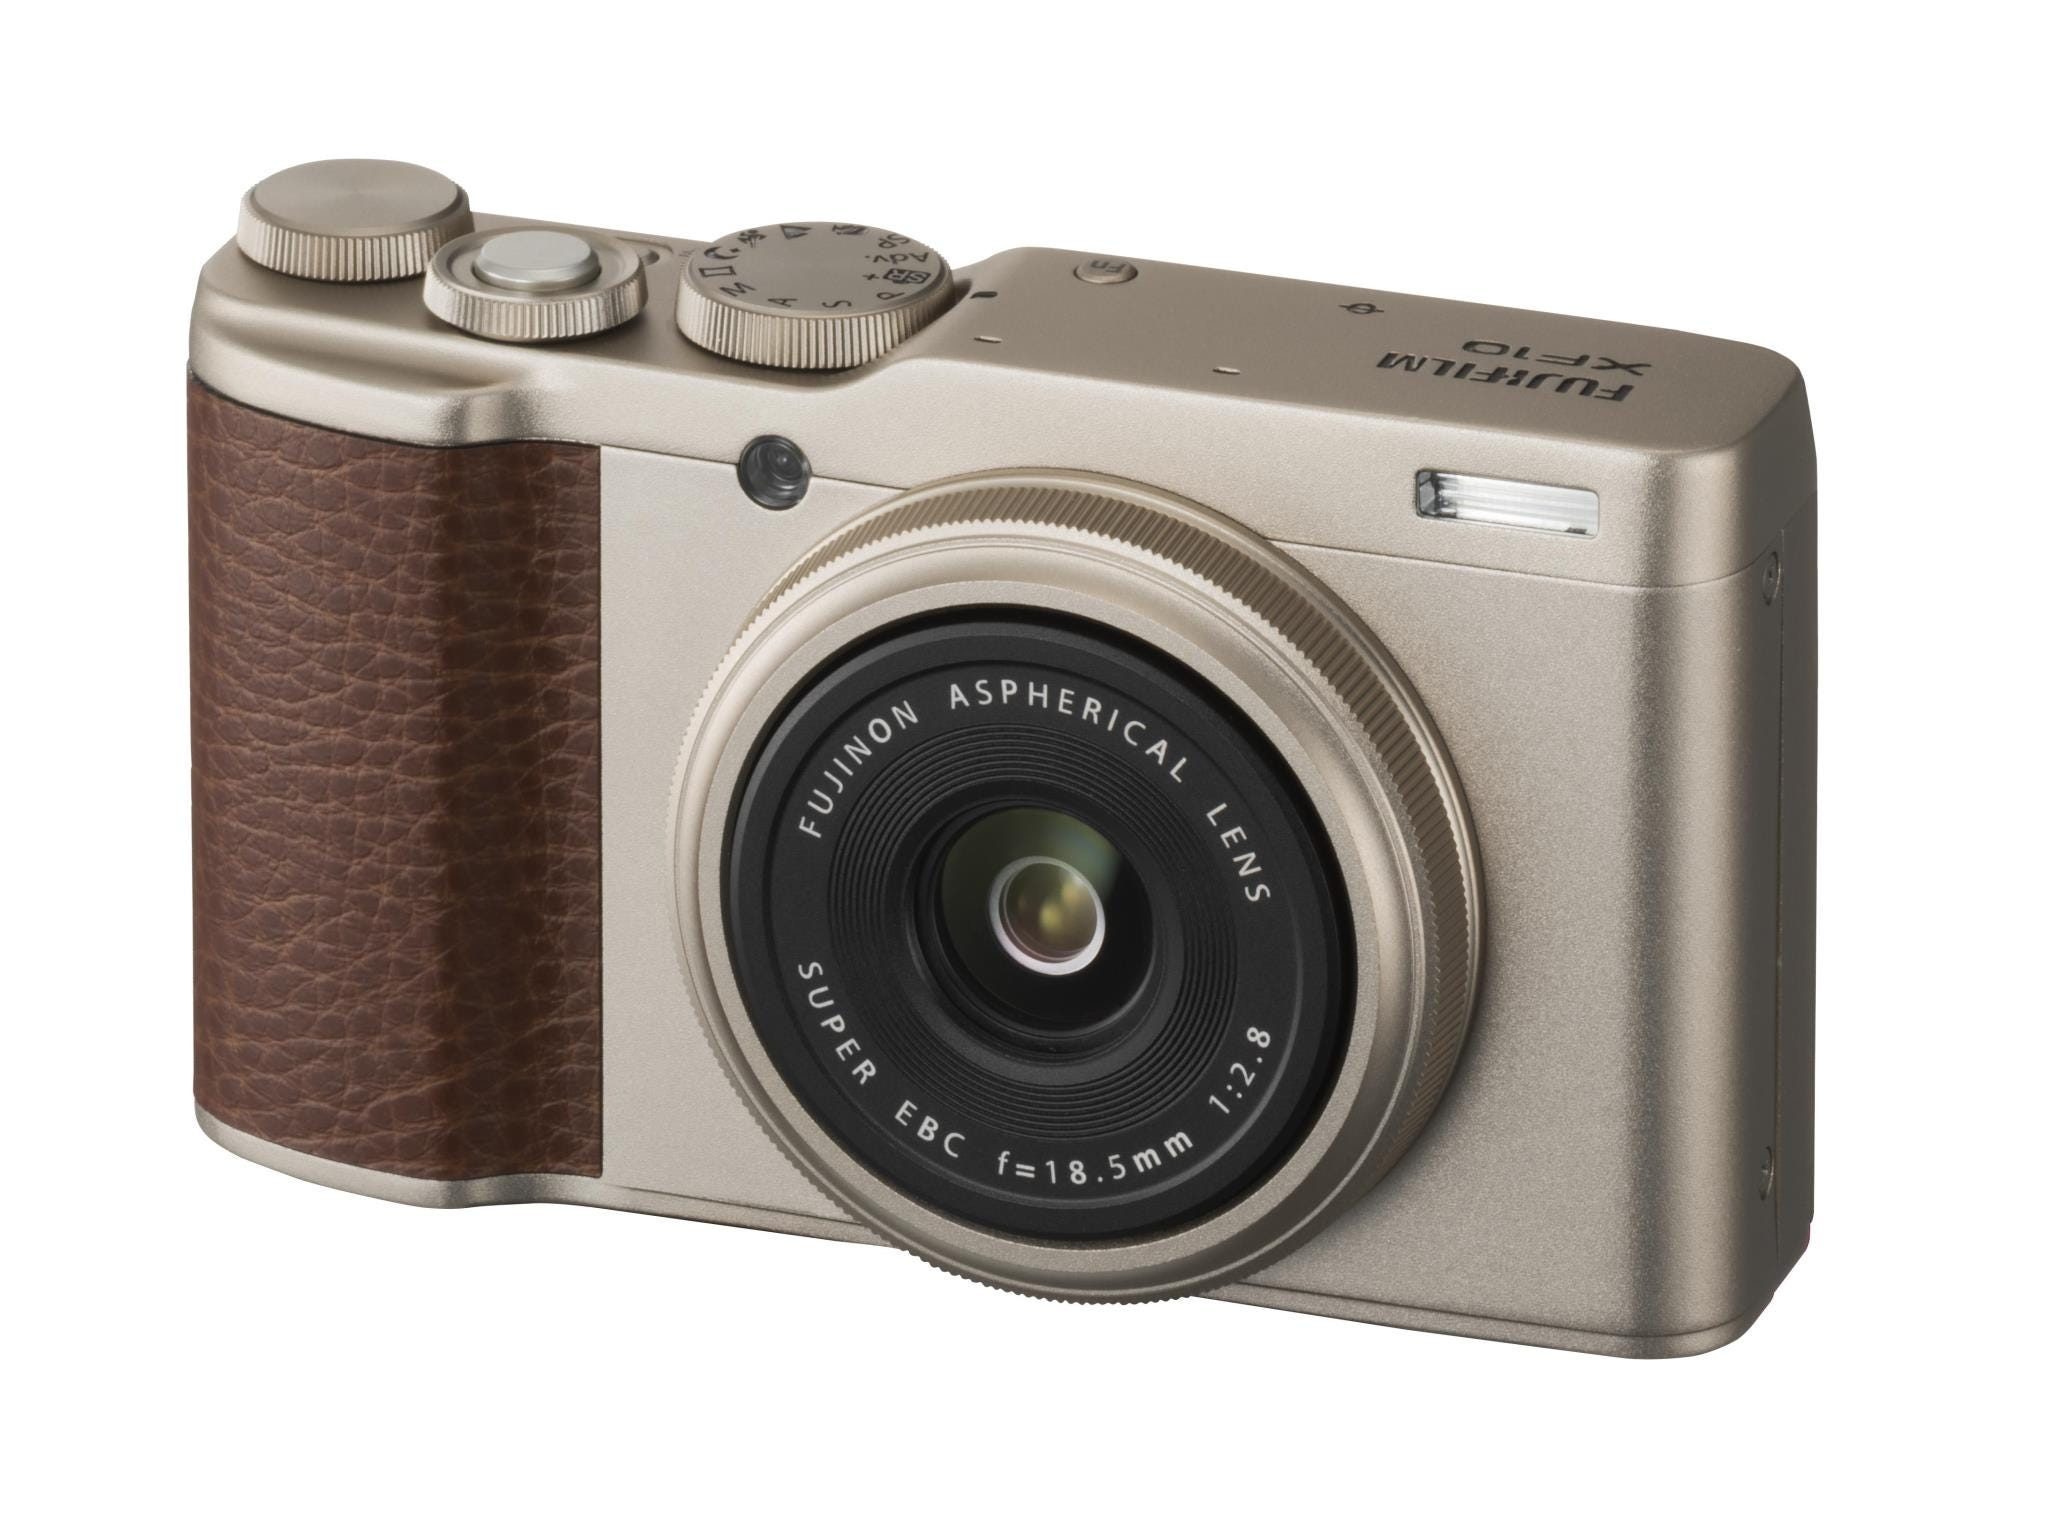 Fujifilm XF10 18.5mm F/2.8 Fixed Lens Compact Camera Champagne Gold